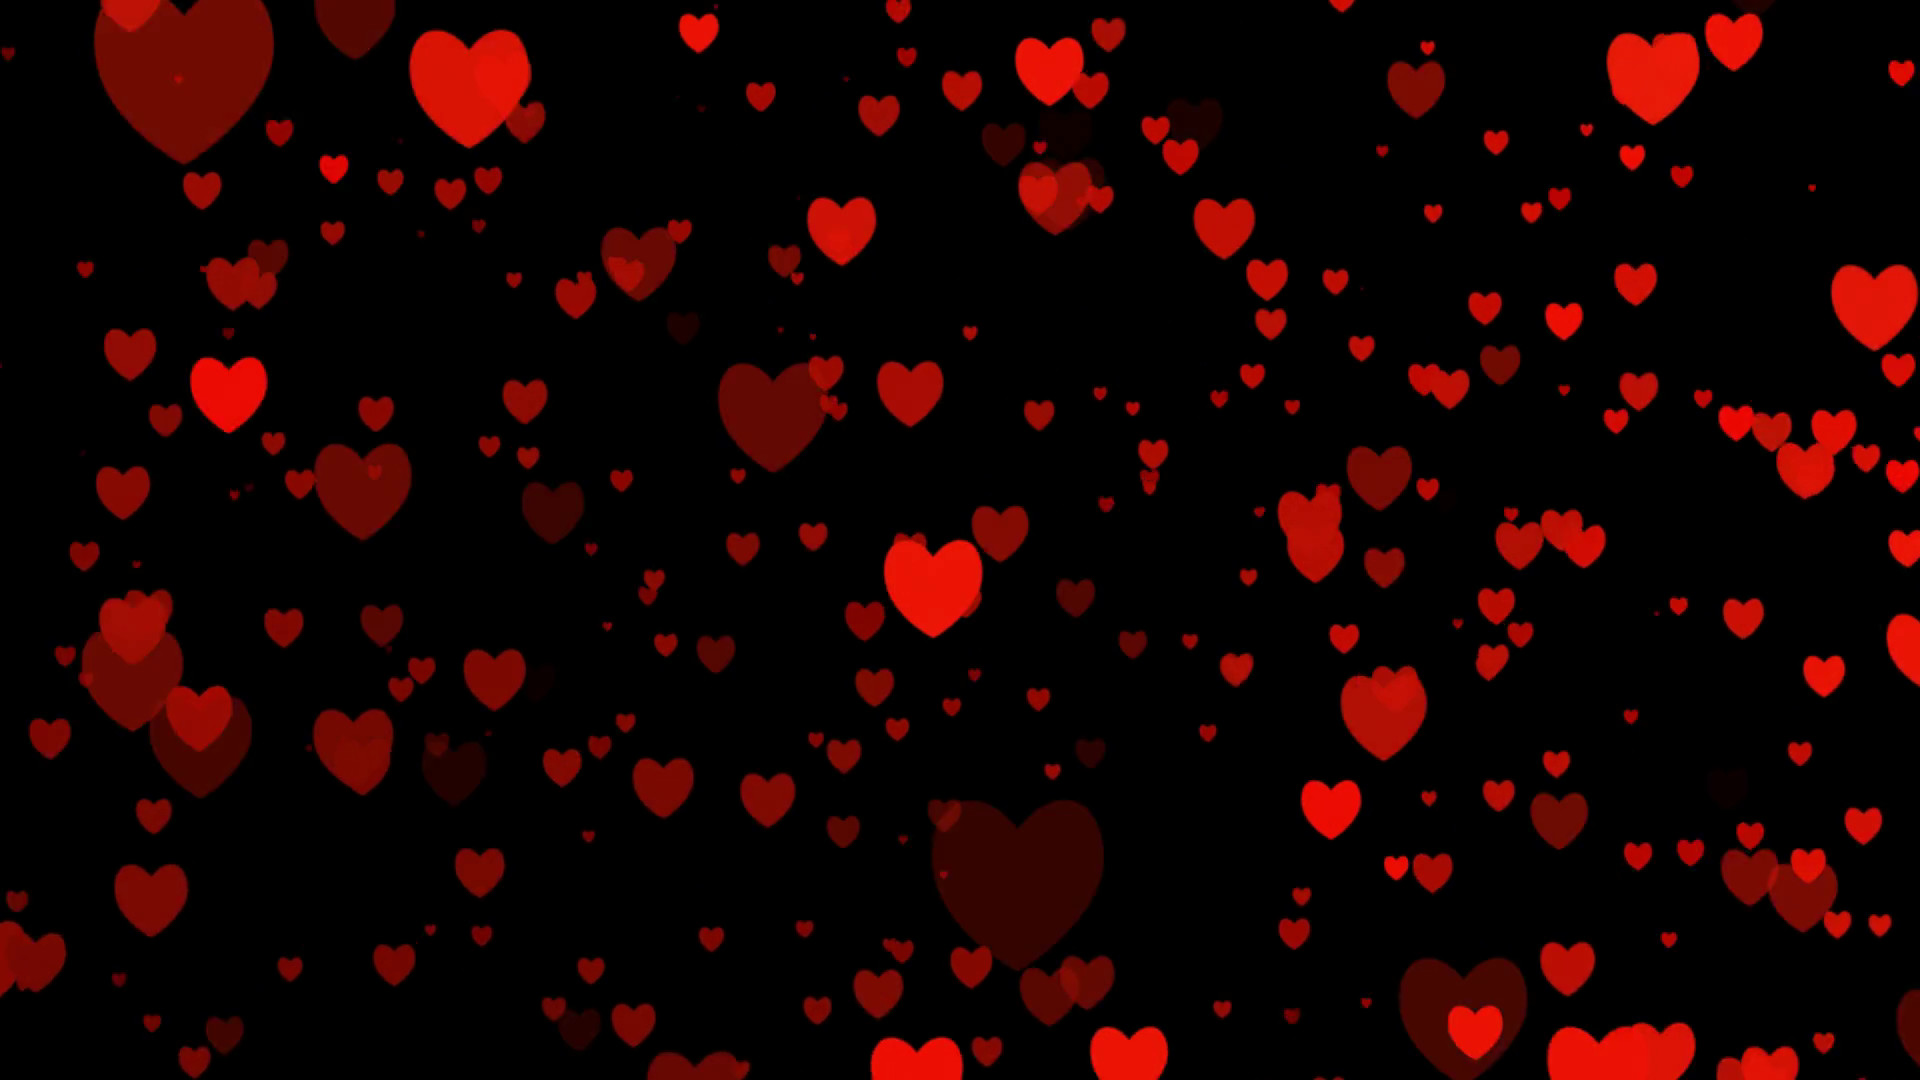 Rose Petals Falling Wallpaper Transparent Gif Red Heart With Black Background 39 Images